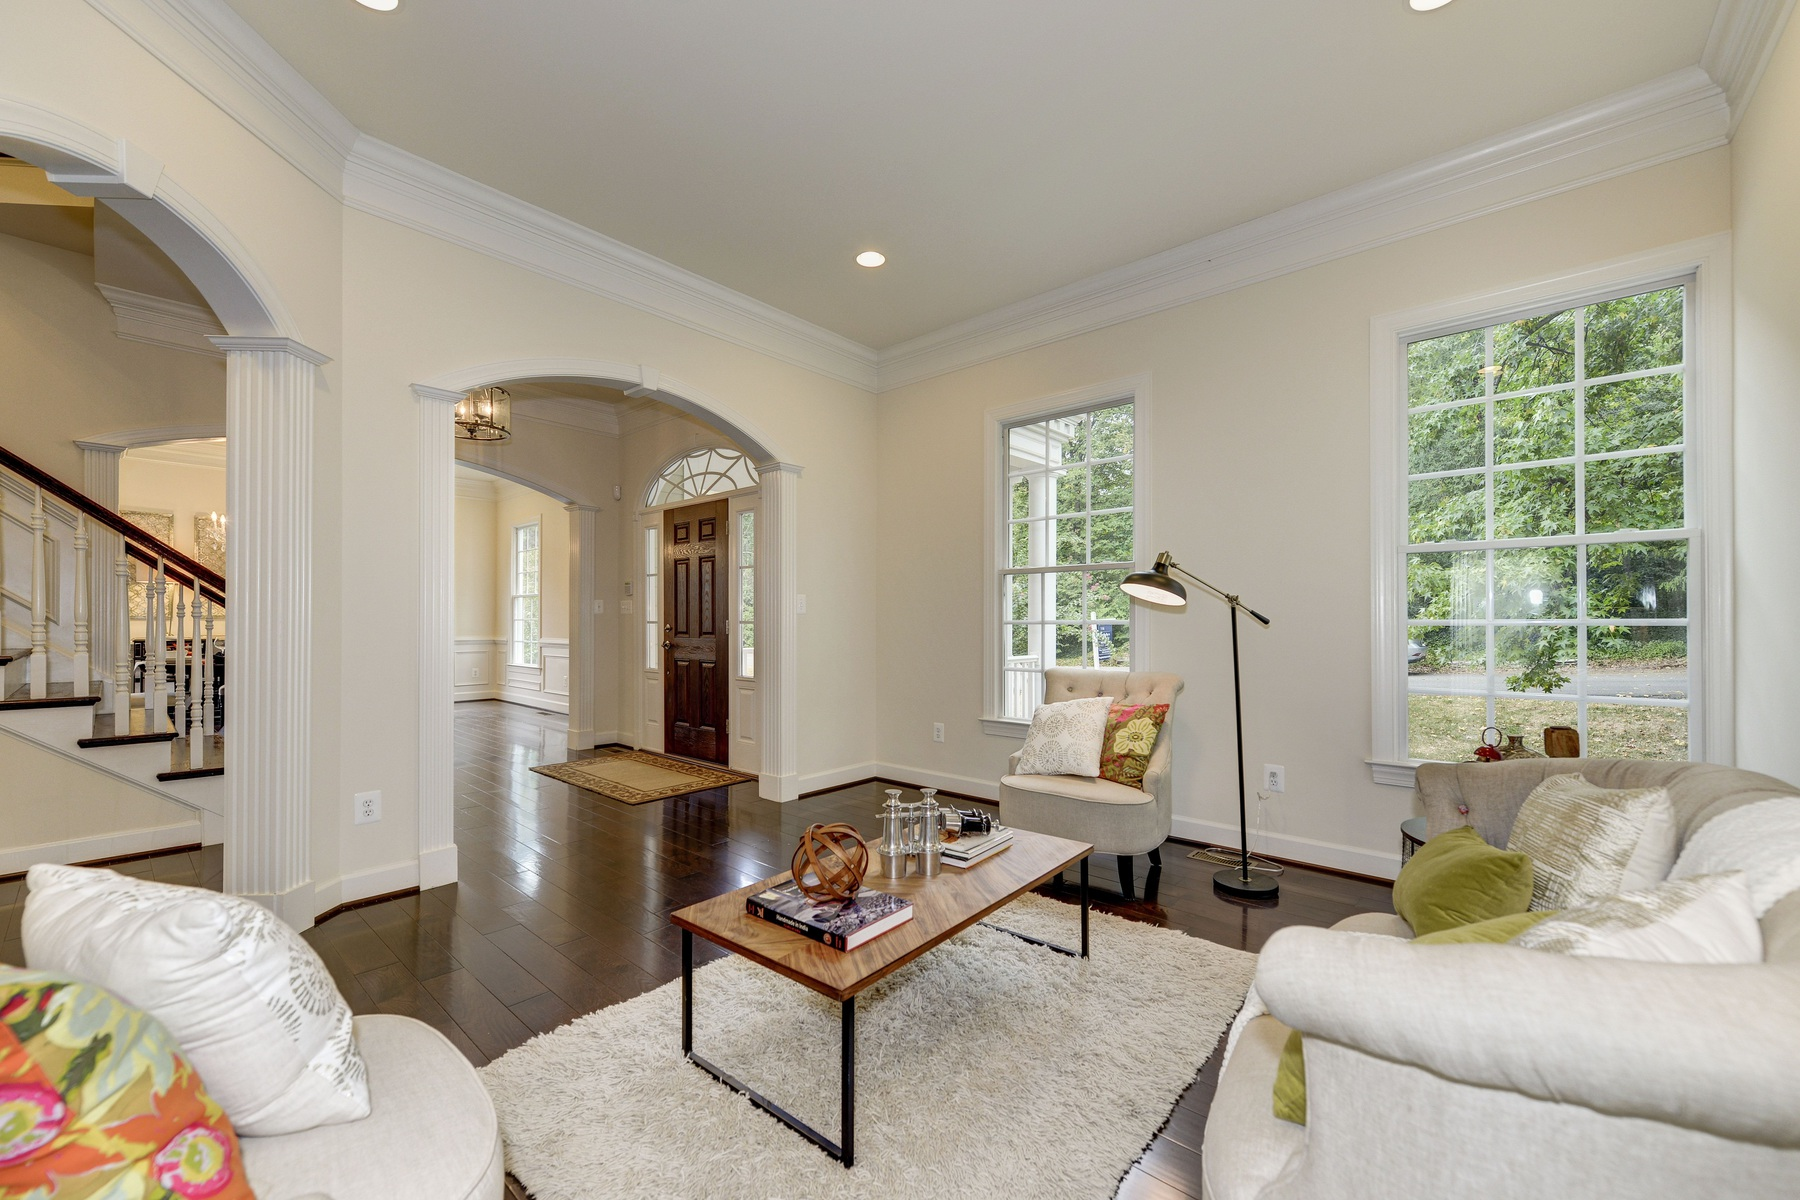 Additional photo for property listing at Cooper Dawson 104 Quaker Lane N Alexandria, Virginia 22304 Stati Uniti